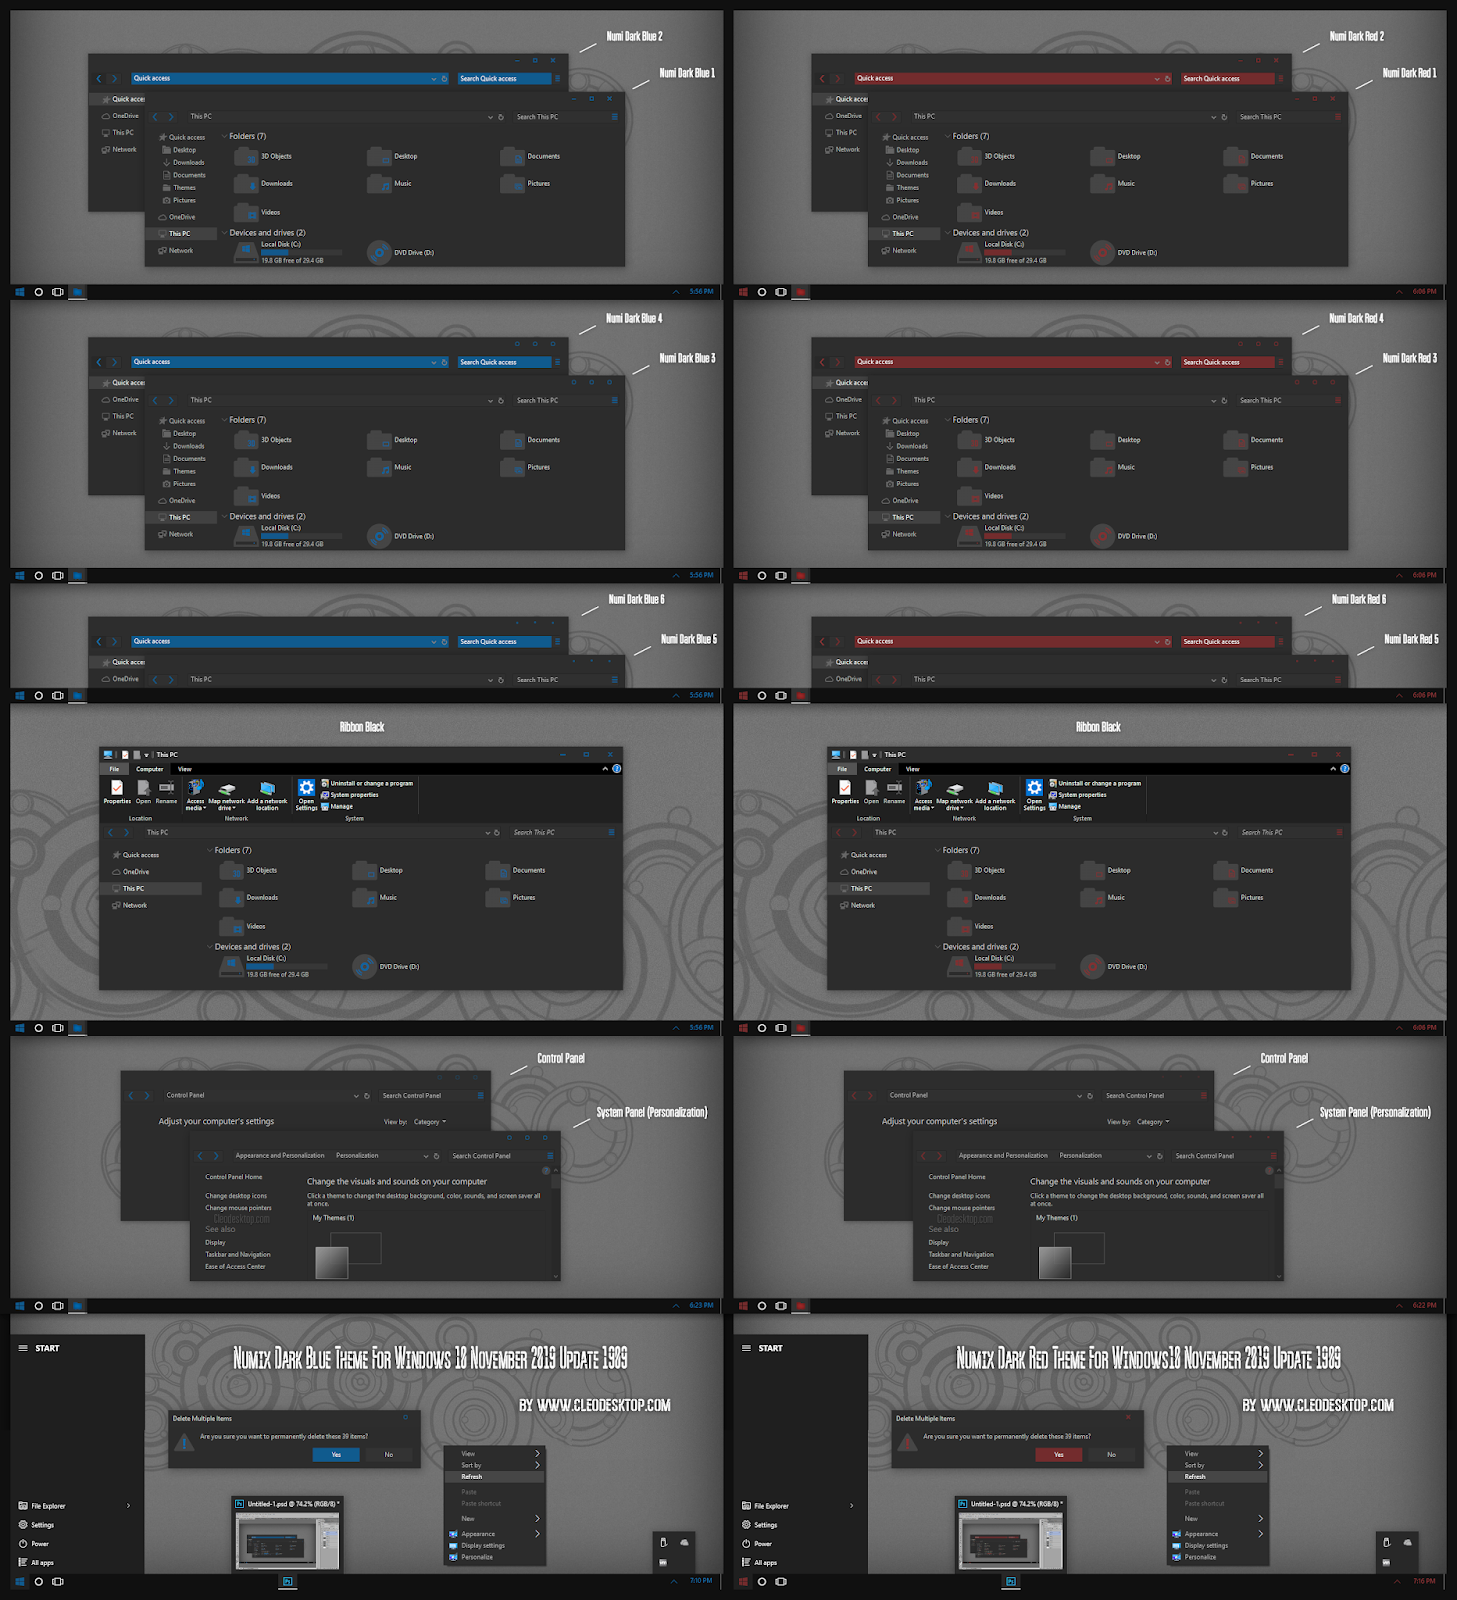 Numix Dark Blue and Red Theme For Windows10 November 2019 Update 1909